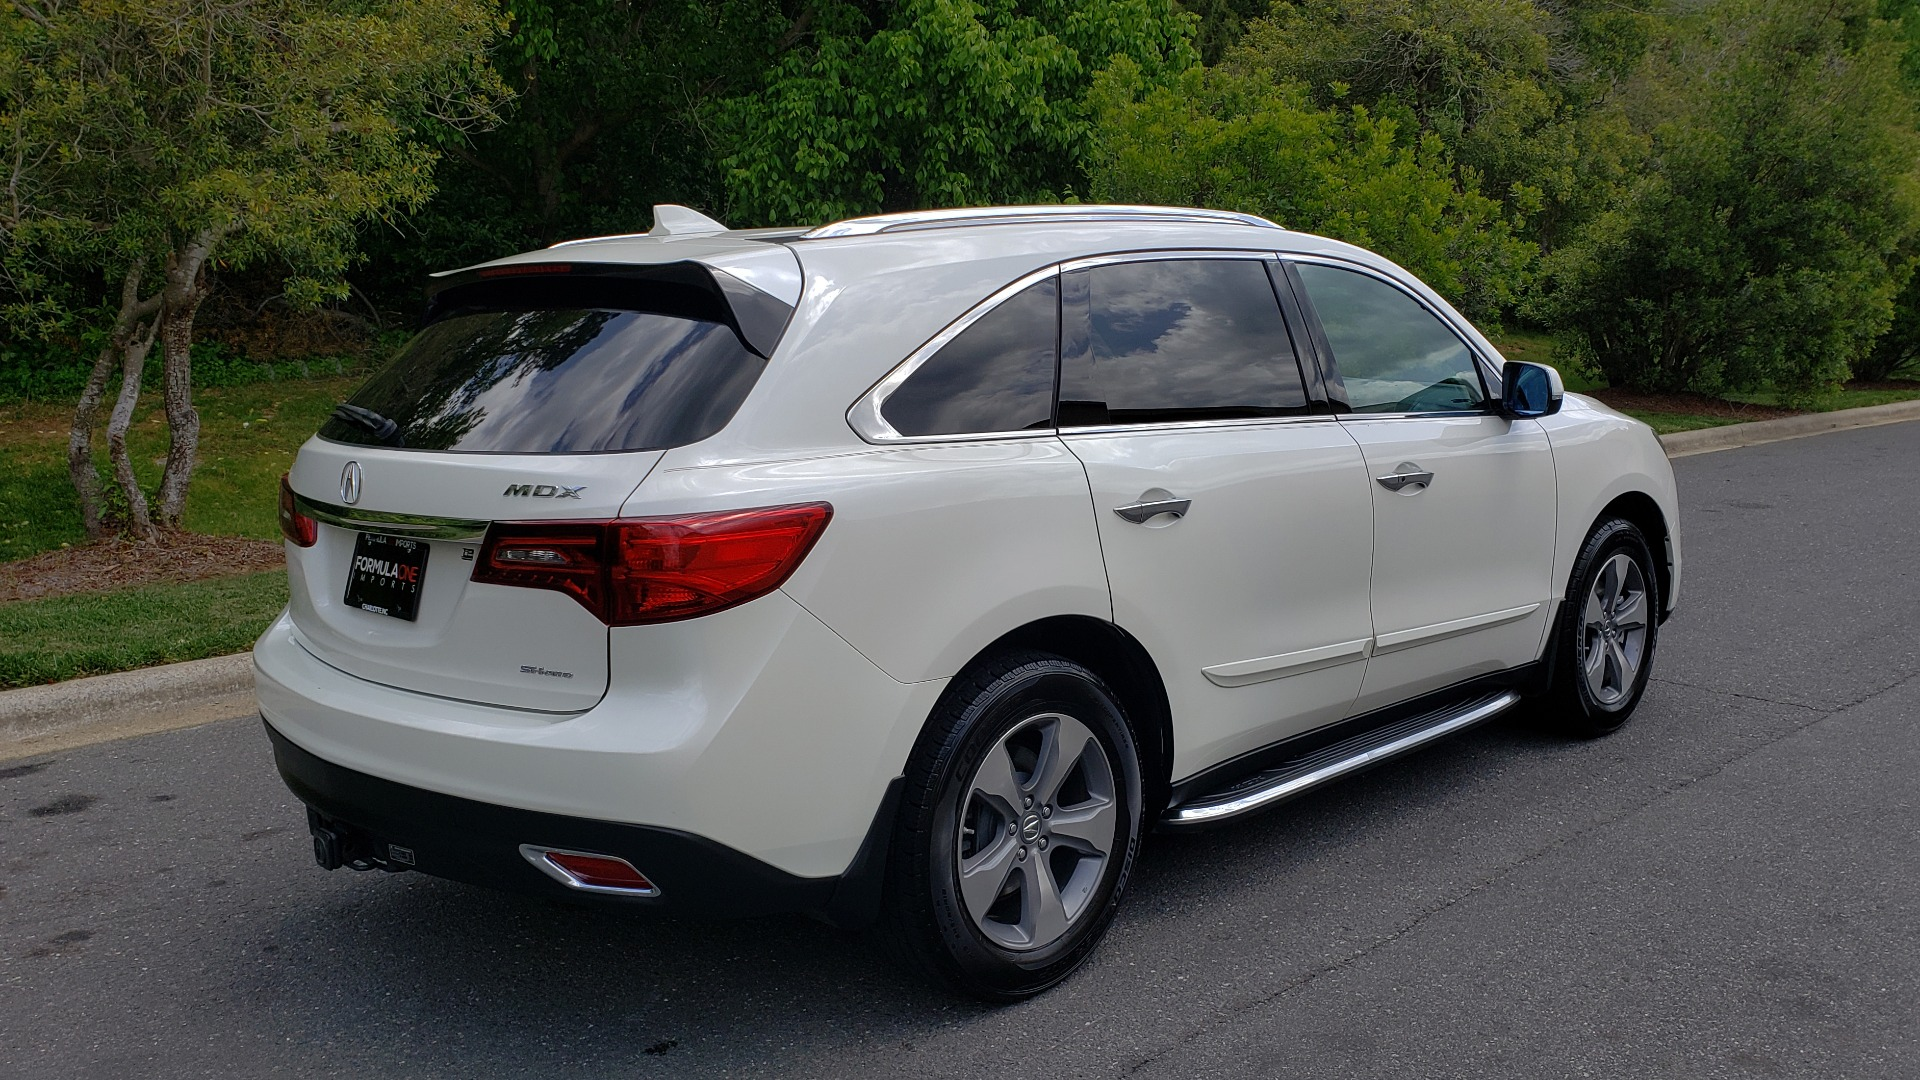 Used 2014 Acura MDX AWD / NAV / SUNROOF / 3-ROW / REARVIEW / PREMIUM SND for sale Sold at Formula Imports in Charlotte NC 28227 6